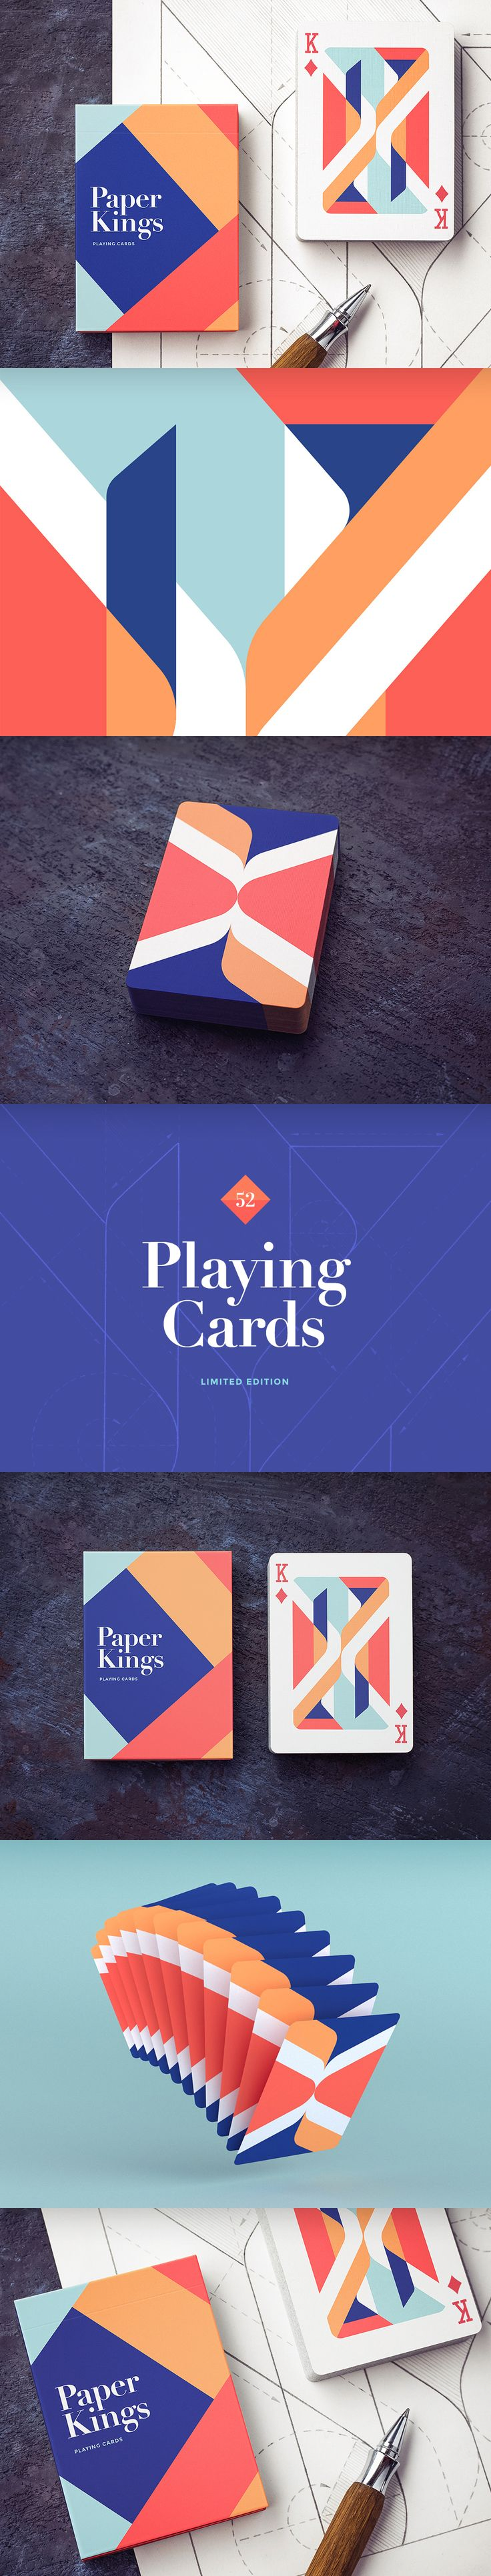 Paper Kings playing cards